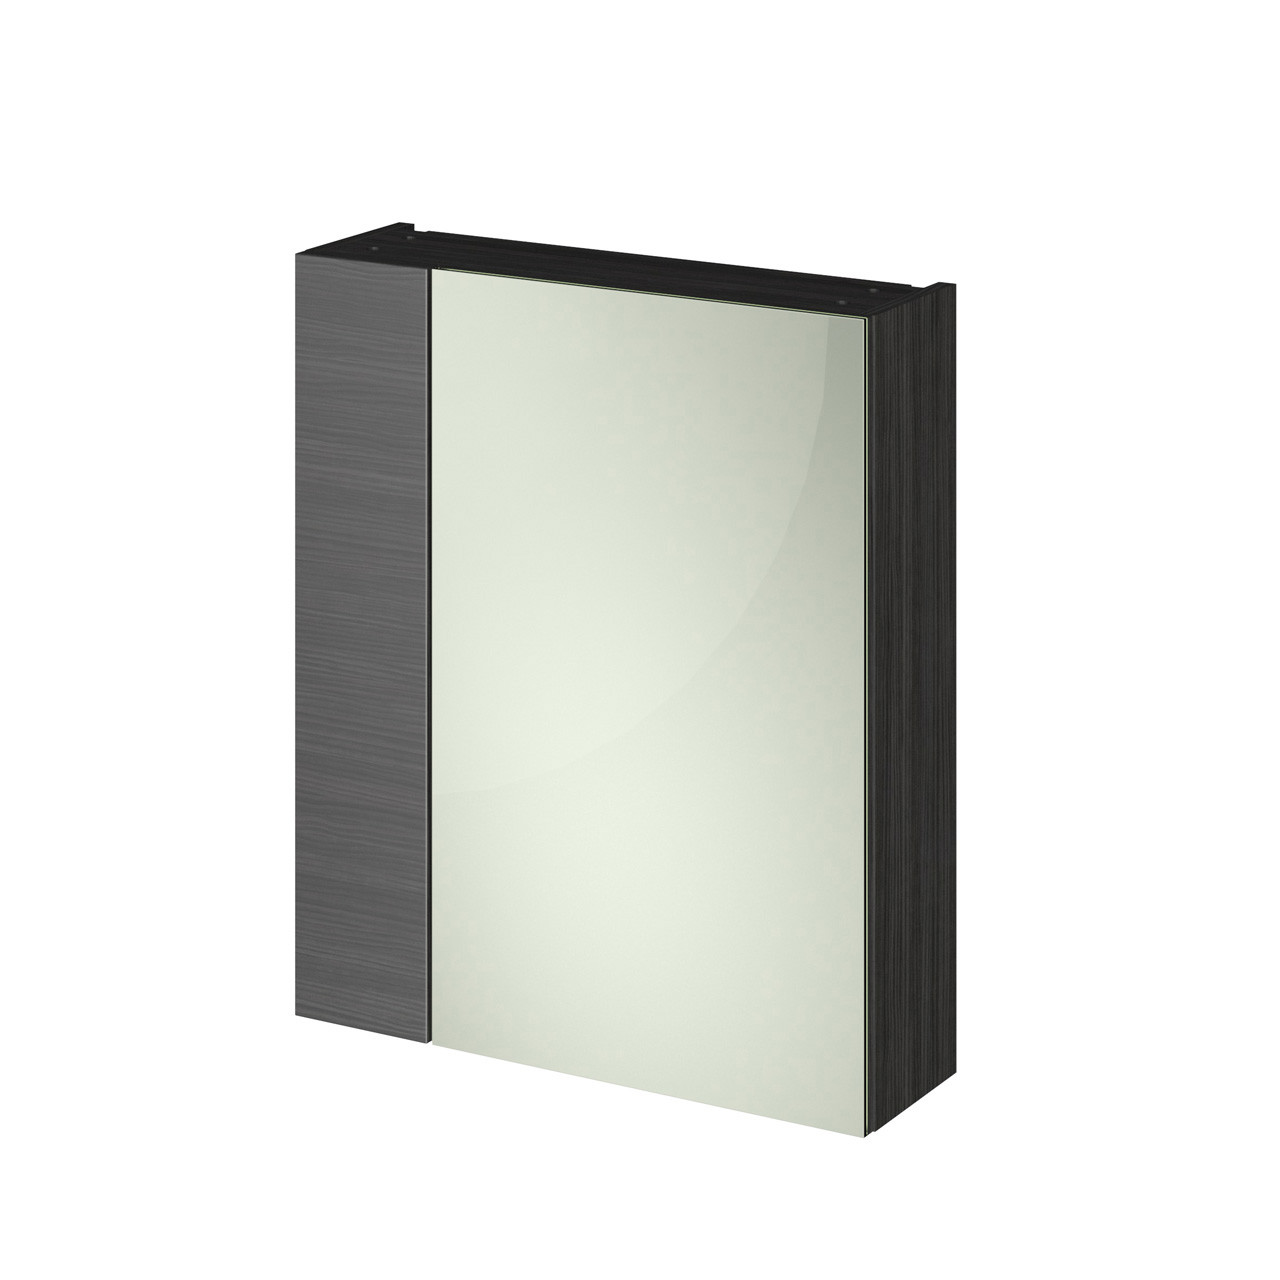 Hudson Reed 600 Fitted Mirror Unit (75/25) 715mm x 600mm x 182mm - OFF618